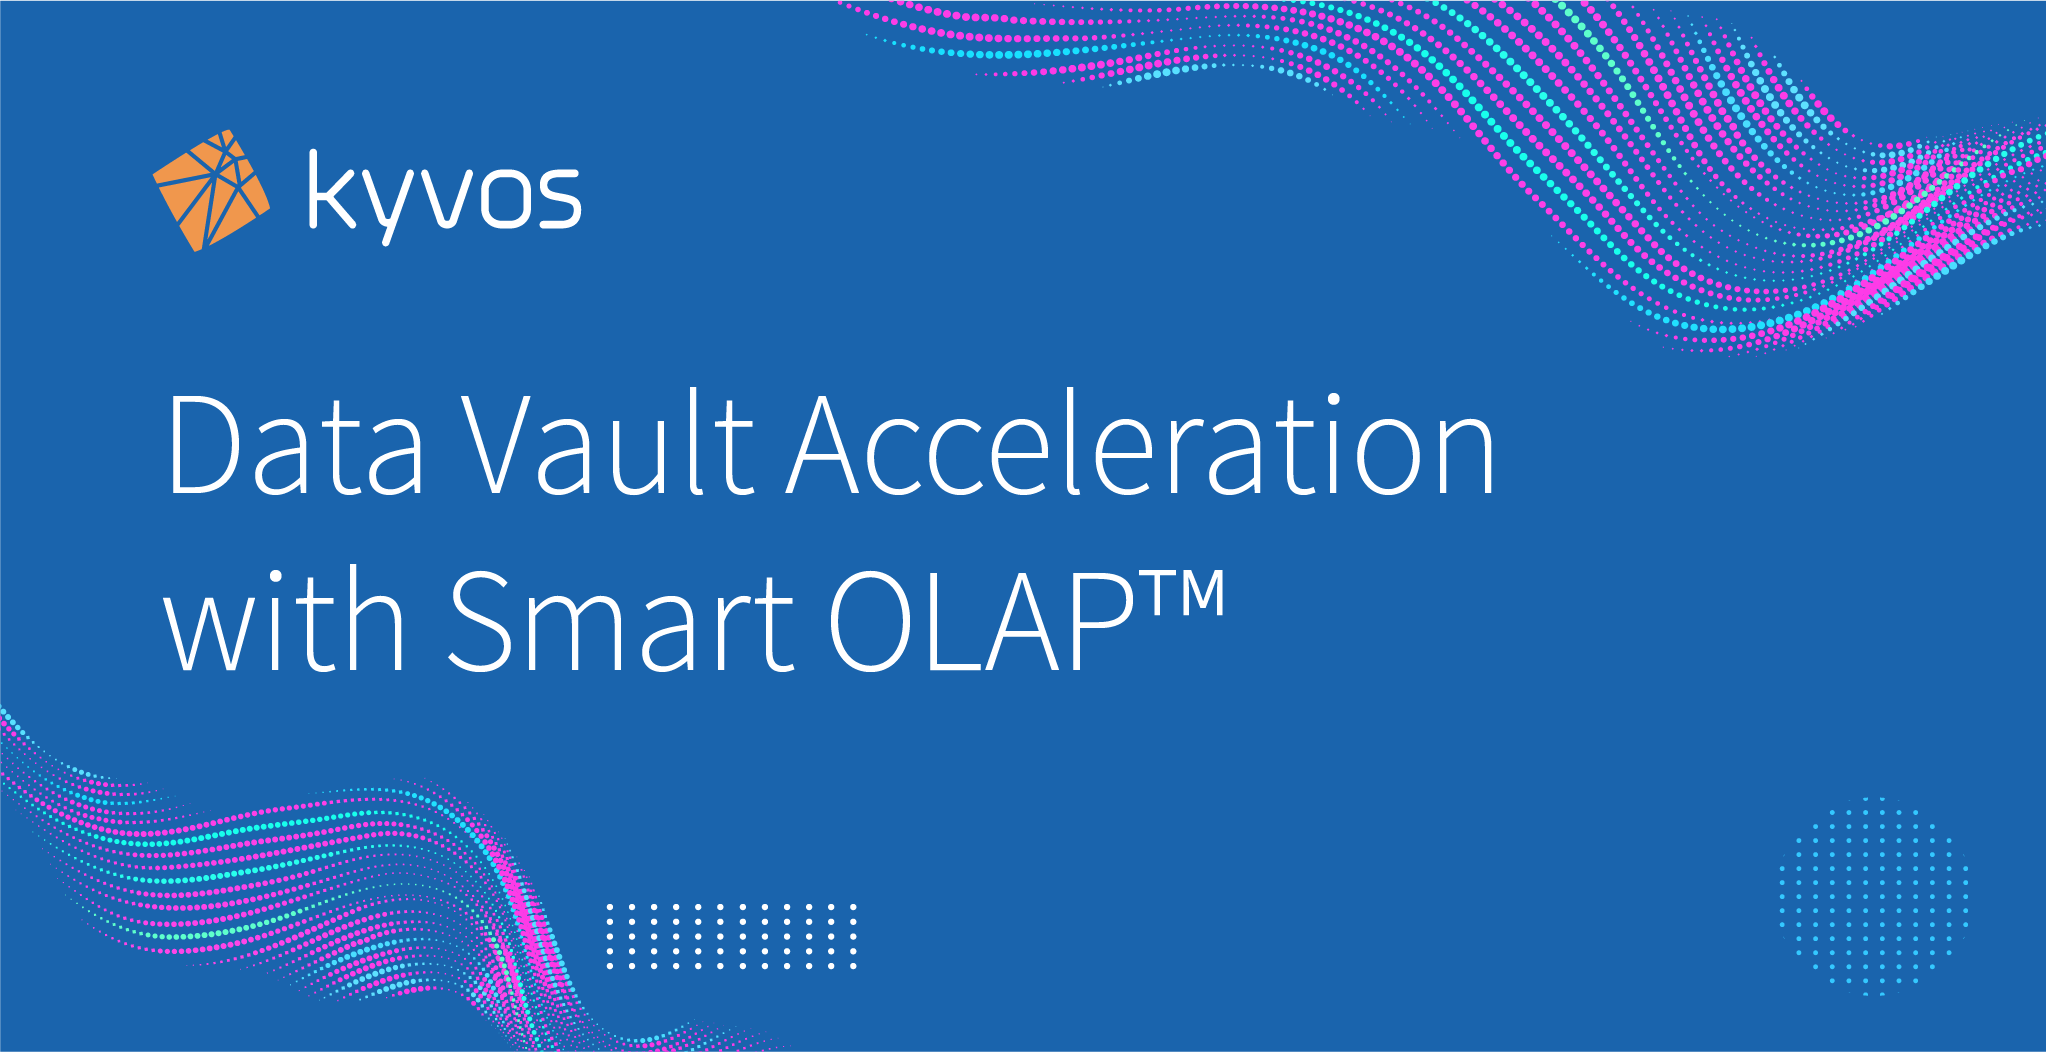 Data Vault Acceleration with Smart OLAP™